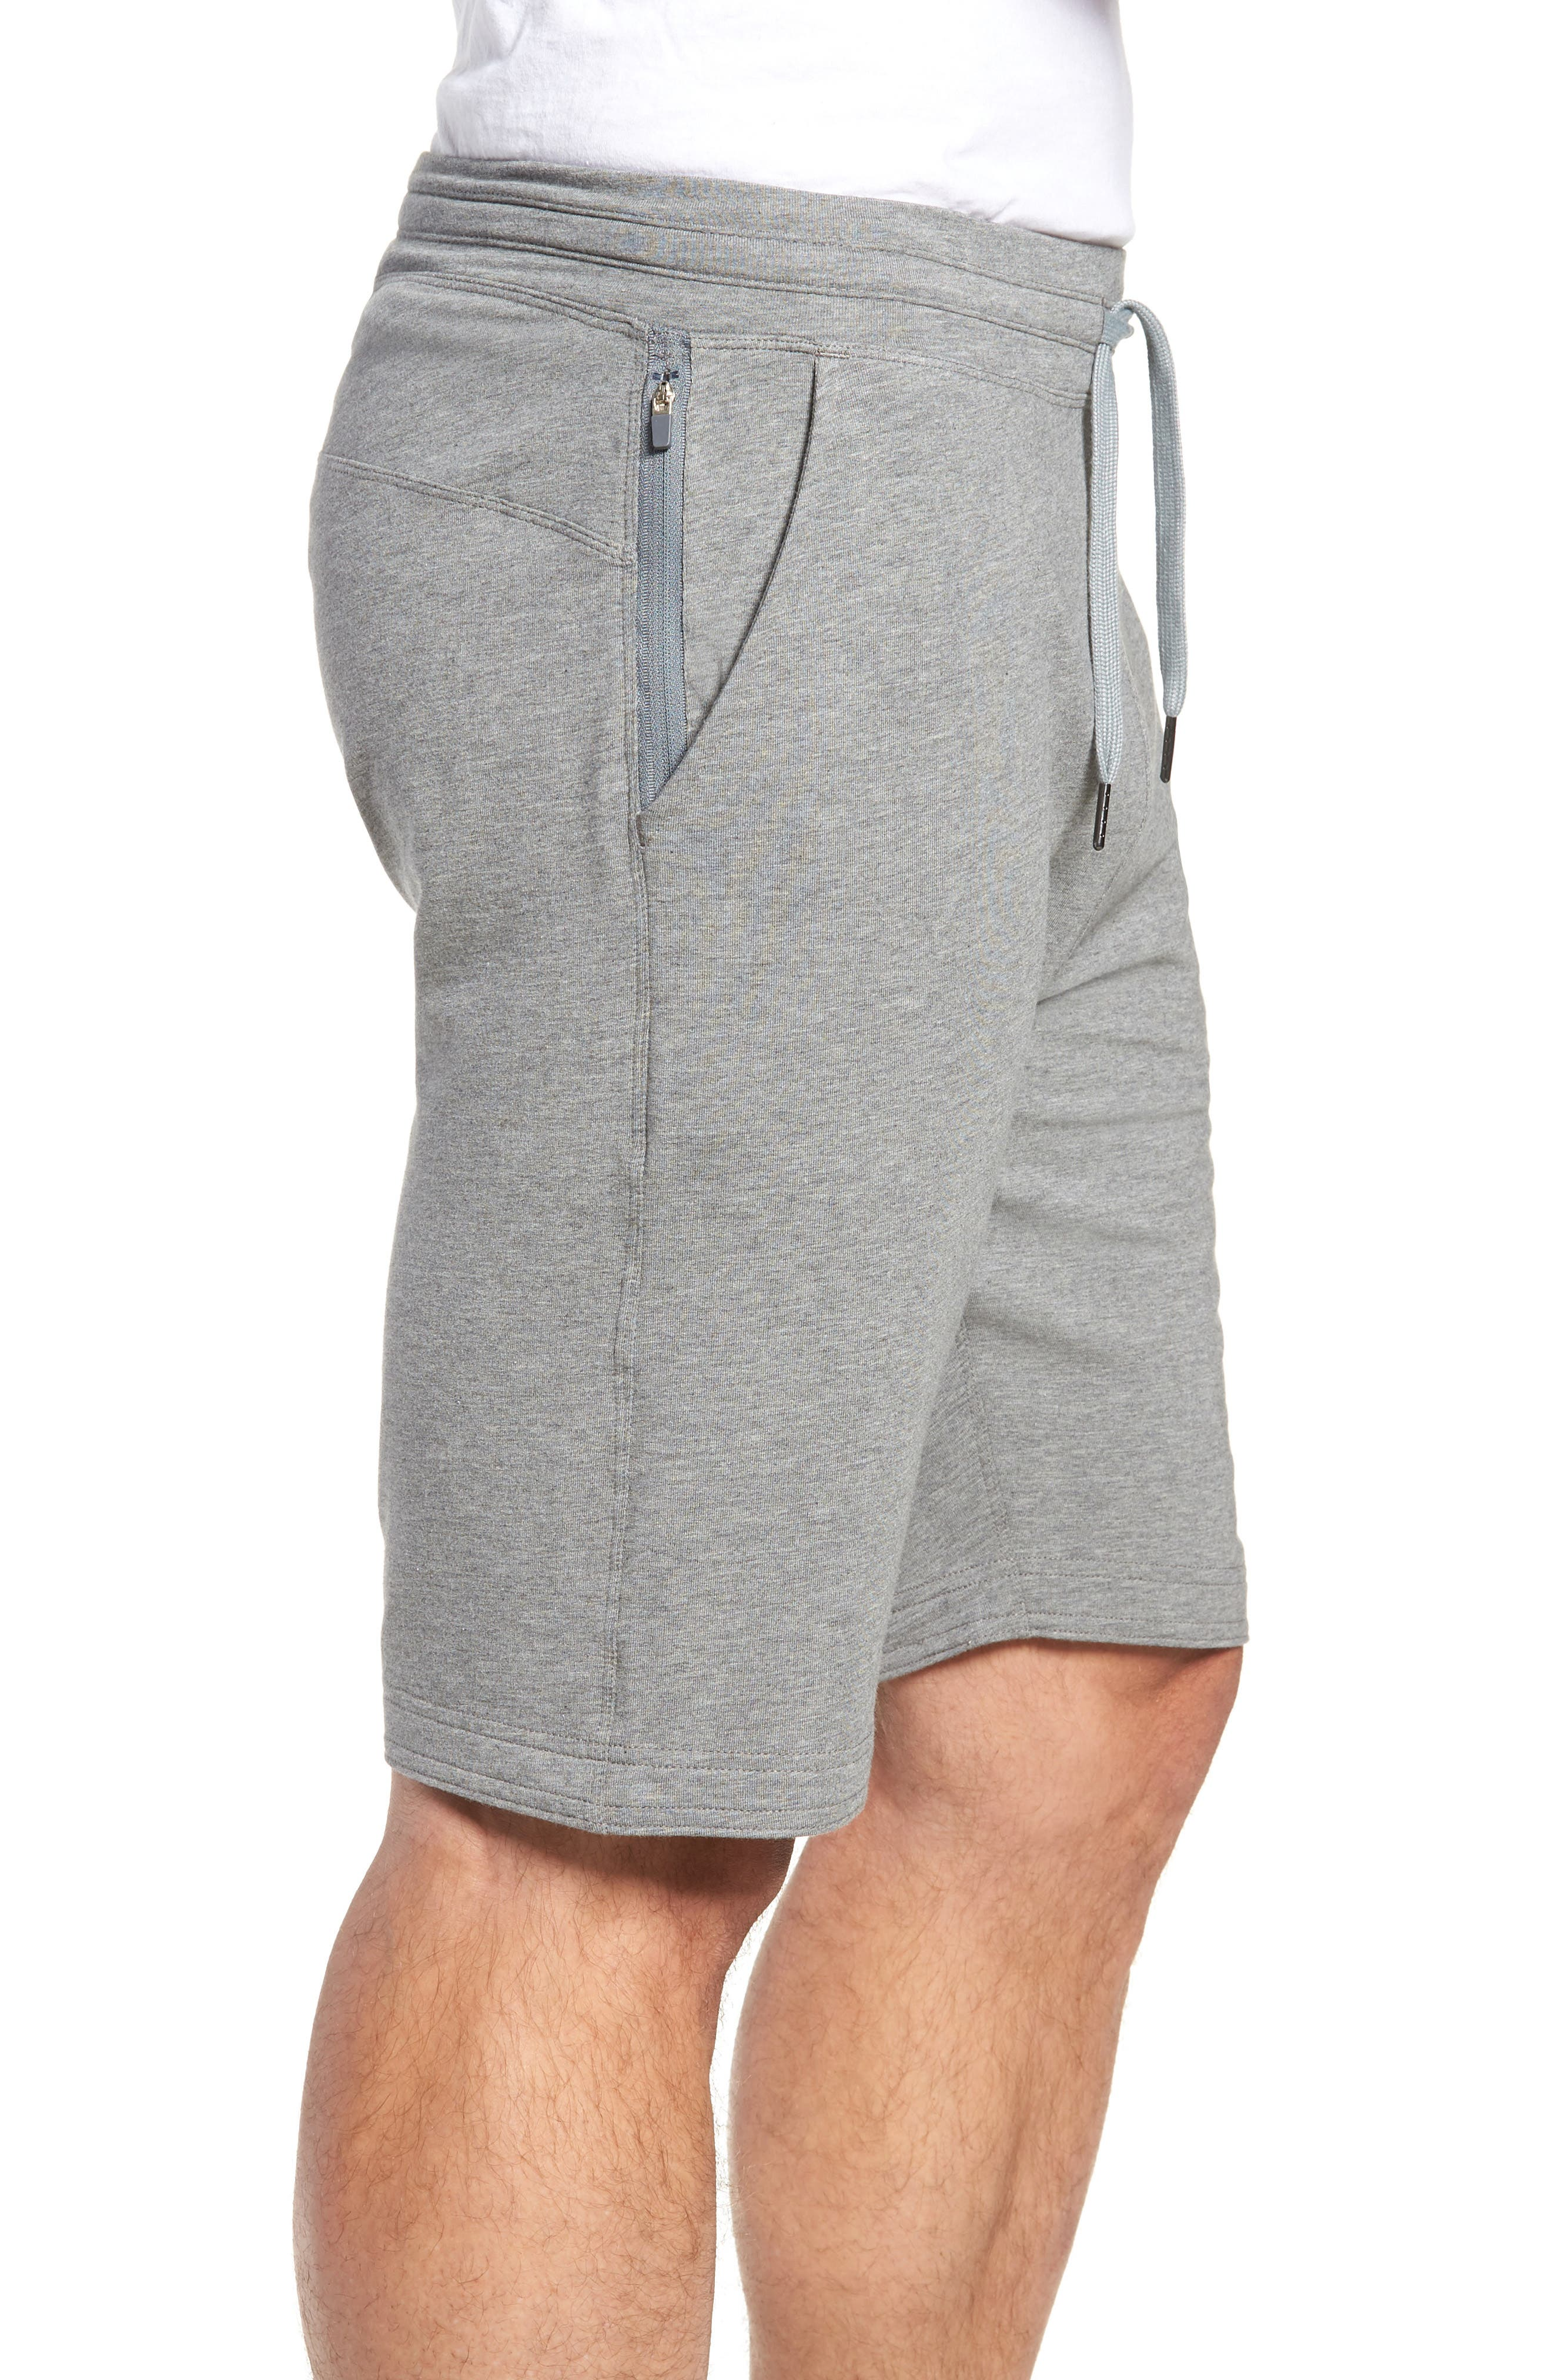 Legacy II Semi-Fitted Knit Athletic Shorts,                             Alternate thumbnail 3, color,                             HEATHER GRAY